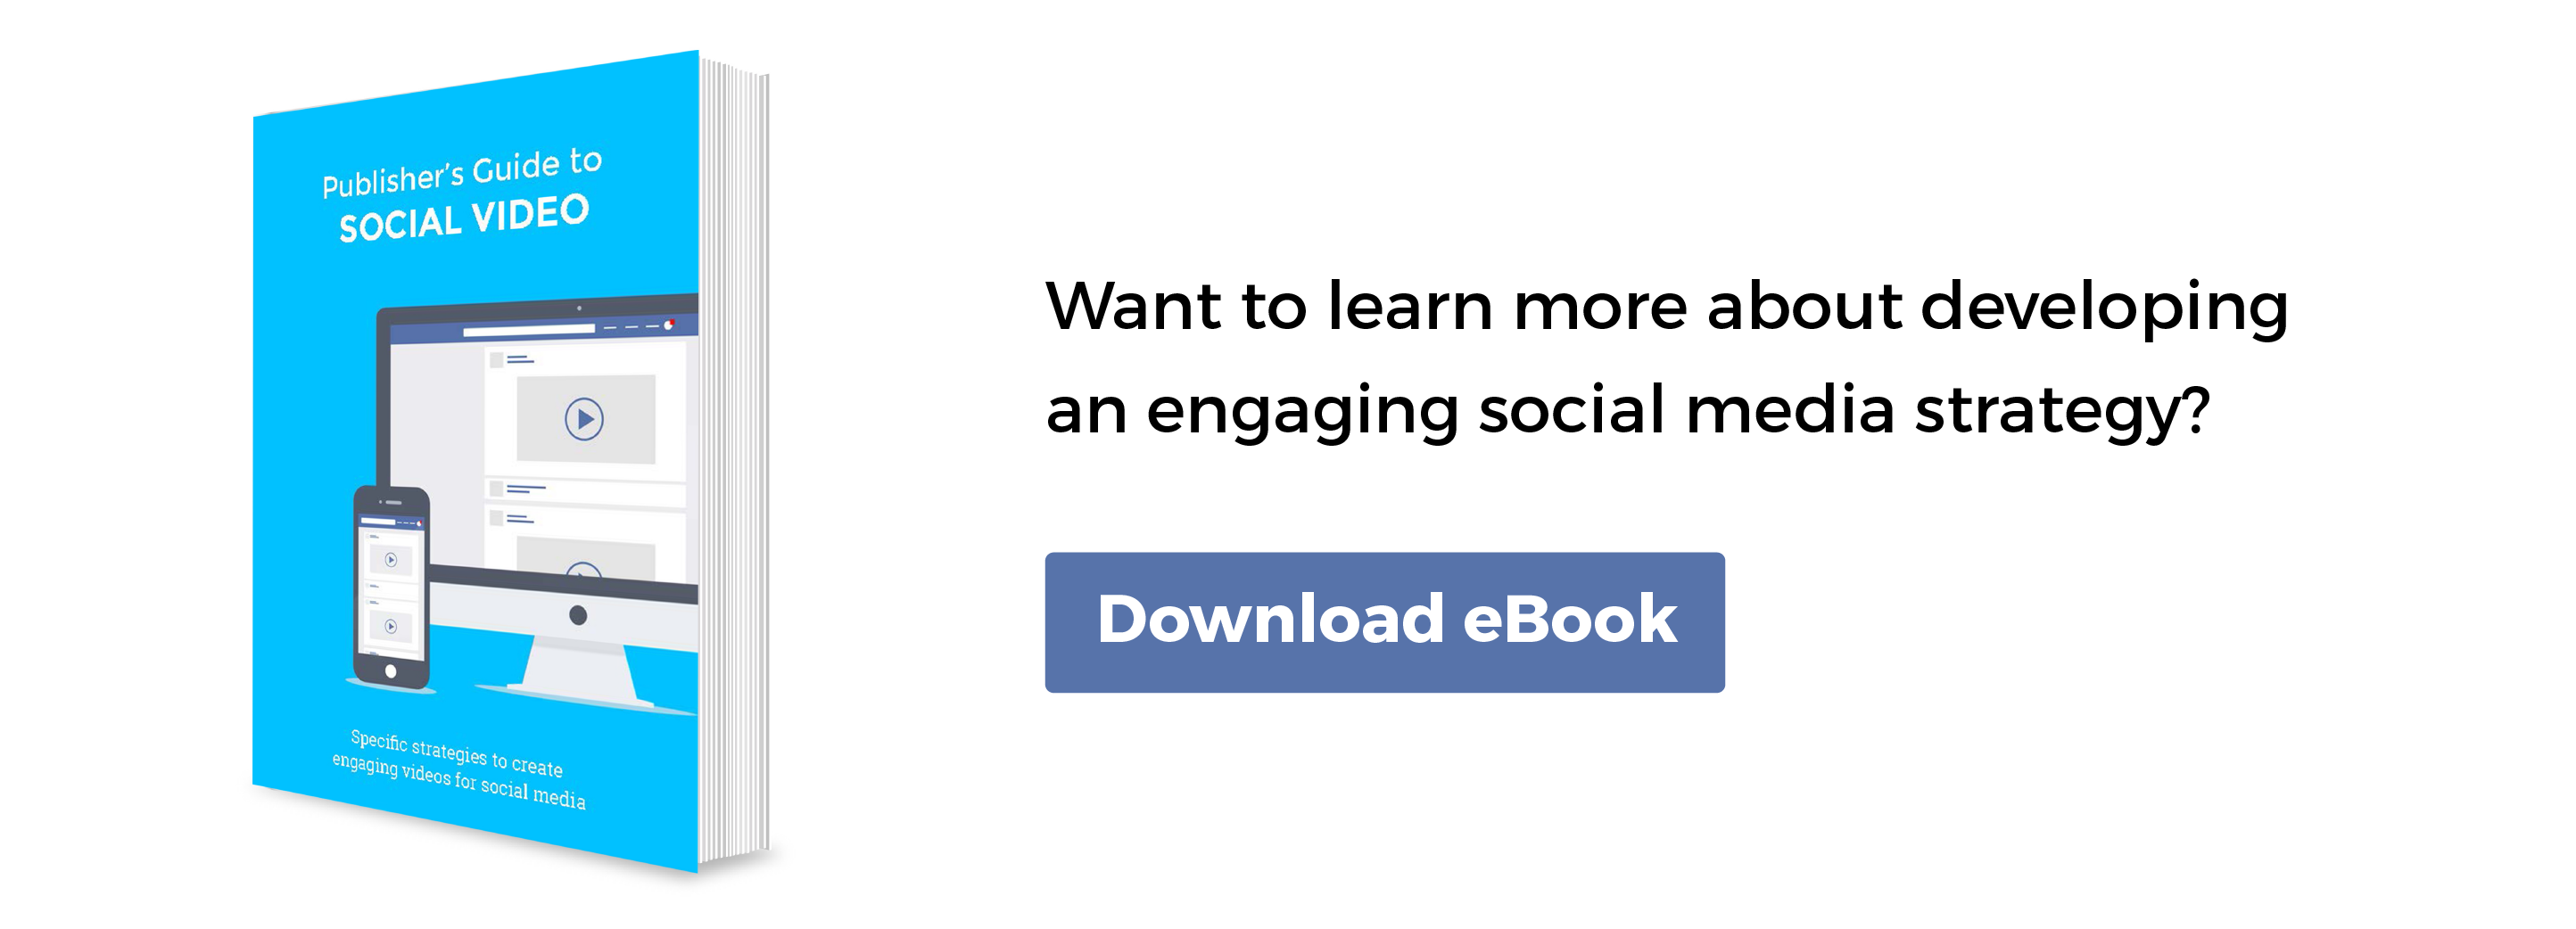 Want to learn more about developing an engaging social media strategy? Download our guide!